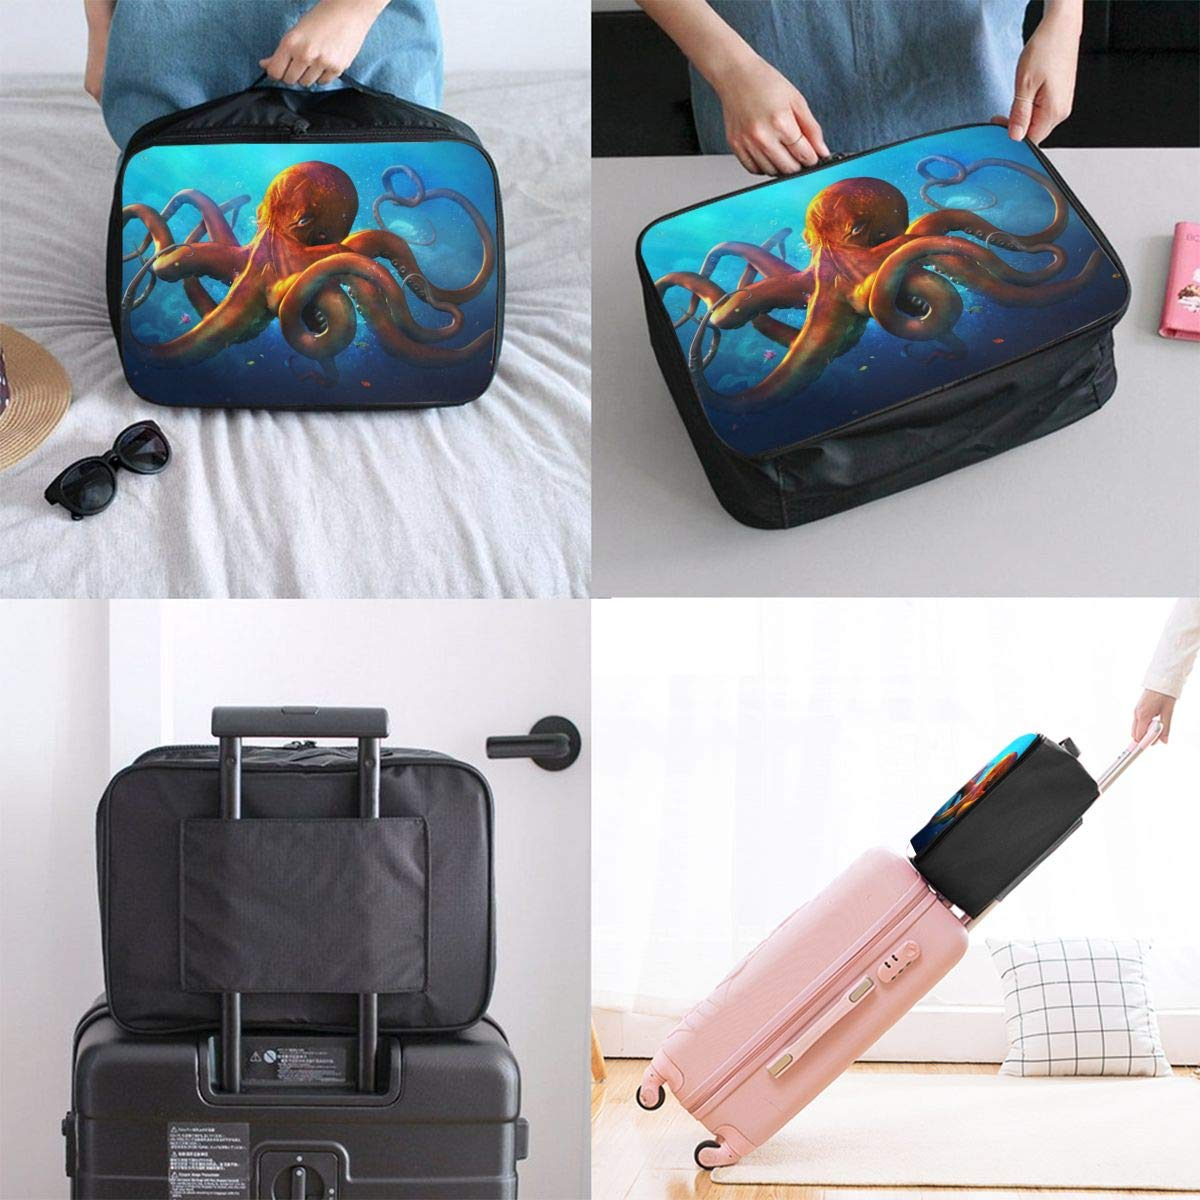 YueLJB Slouching Octopus Lightweight Large Capacity Portable Luggage Bag Travel Duffel Bag Storage Carry Luggage Duffle Tote Bag